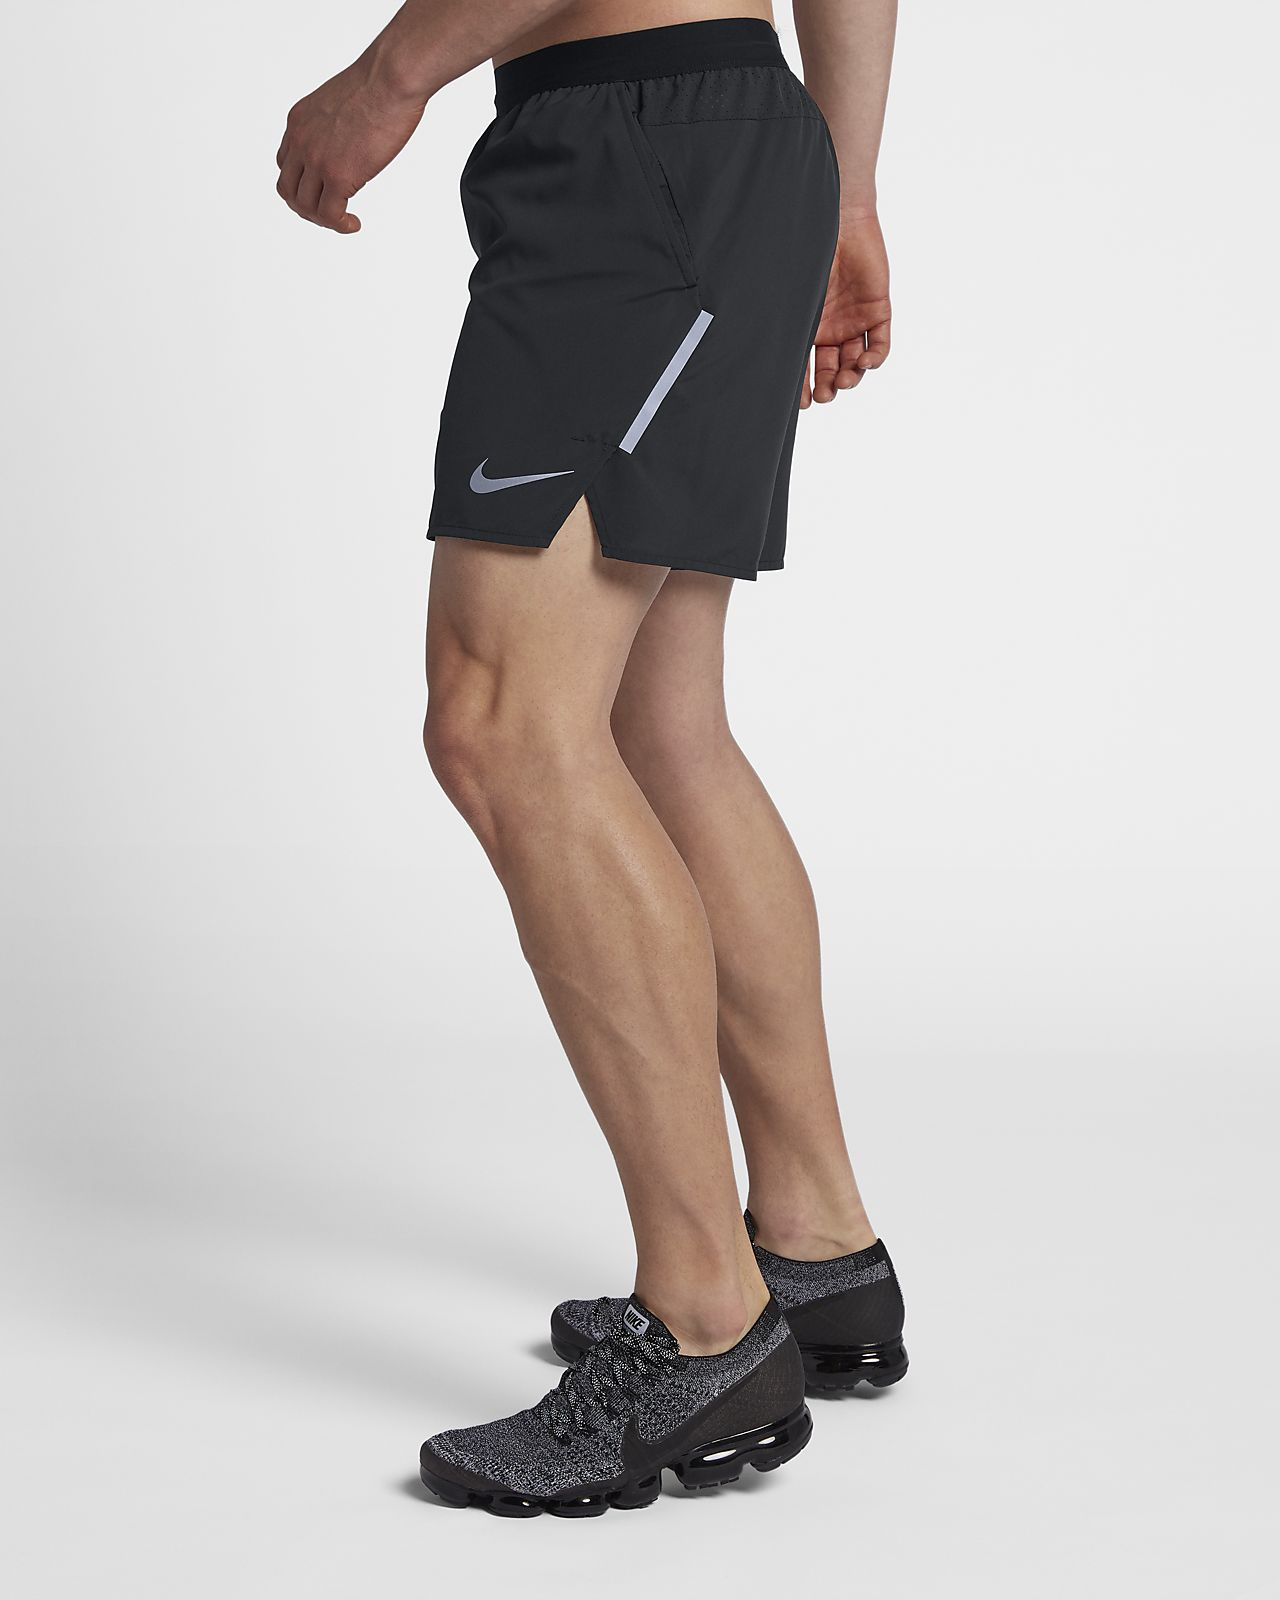 d7e3a922fb79 Lined Running Shorts Nike Flex Stride Men s 5